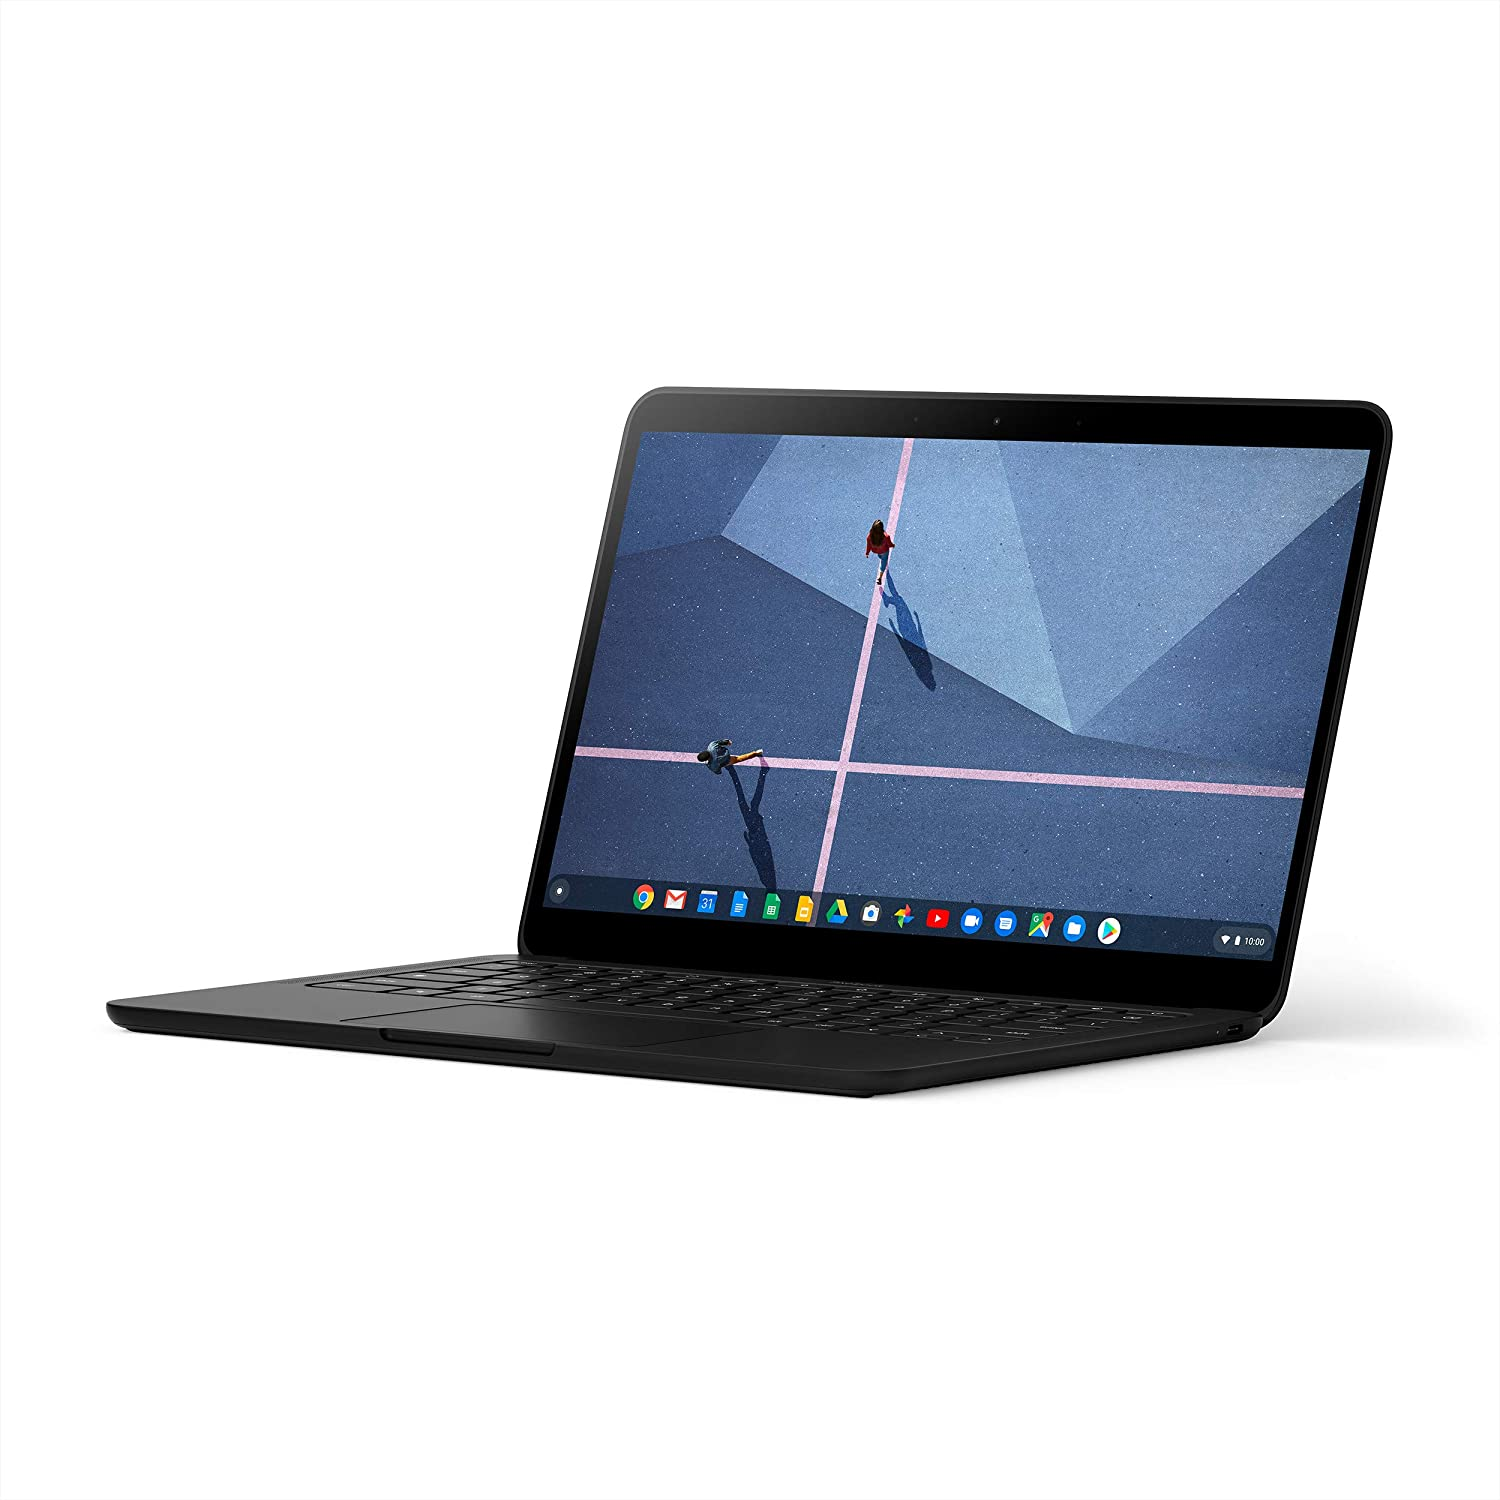 Best Laptop For Traveling